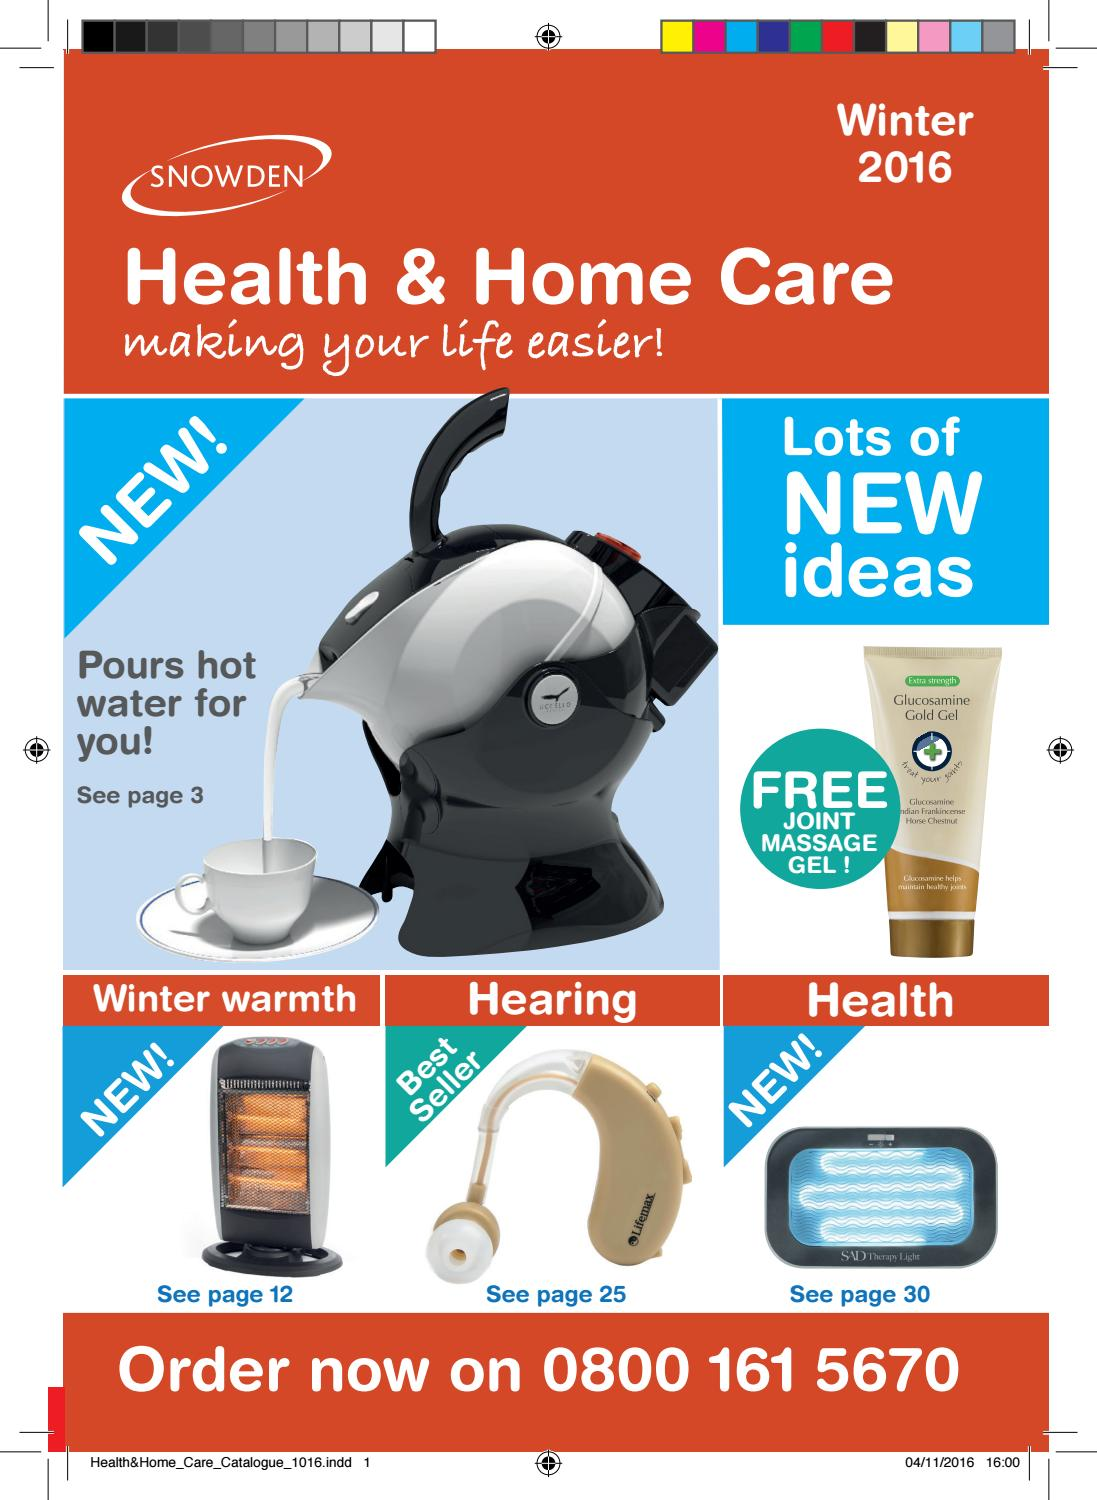 Snowden Health & home care catalogue by Snowden Healthcare - issuu